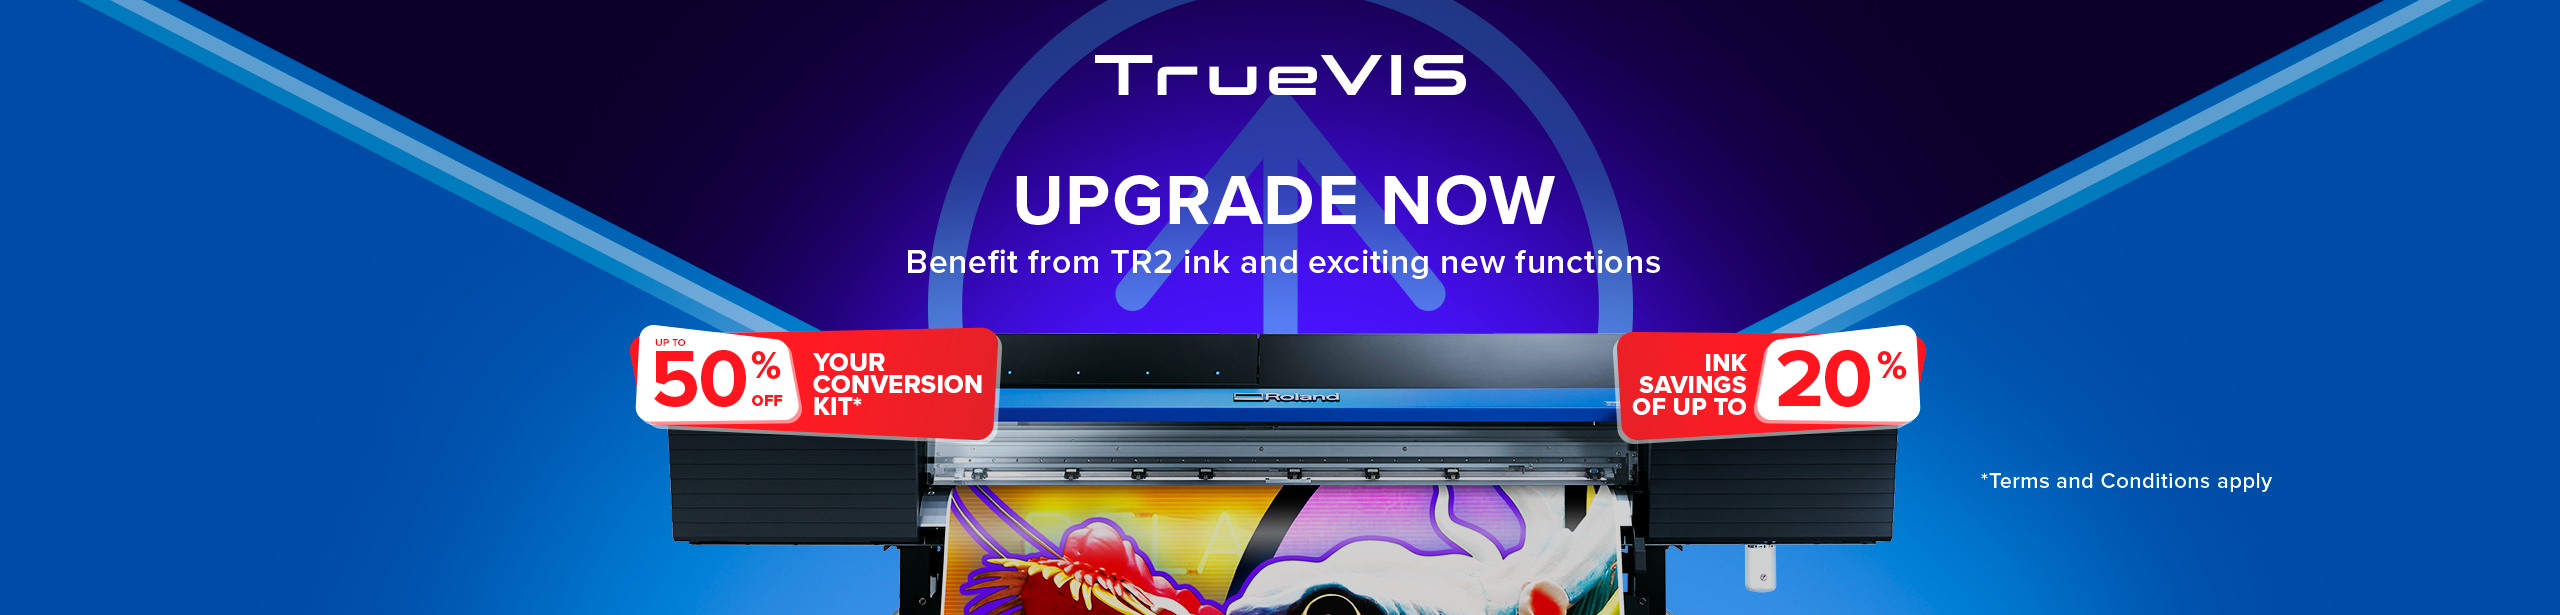 Upgrade your TrueVIS VG or SG printer/cutter today!